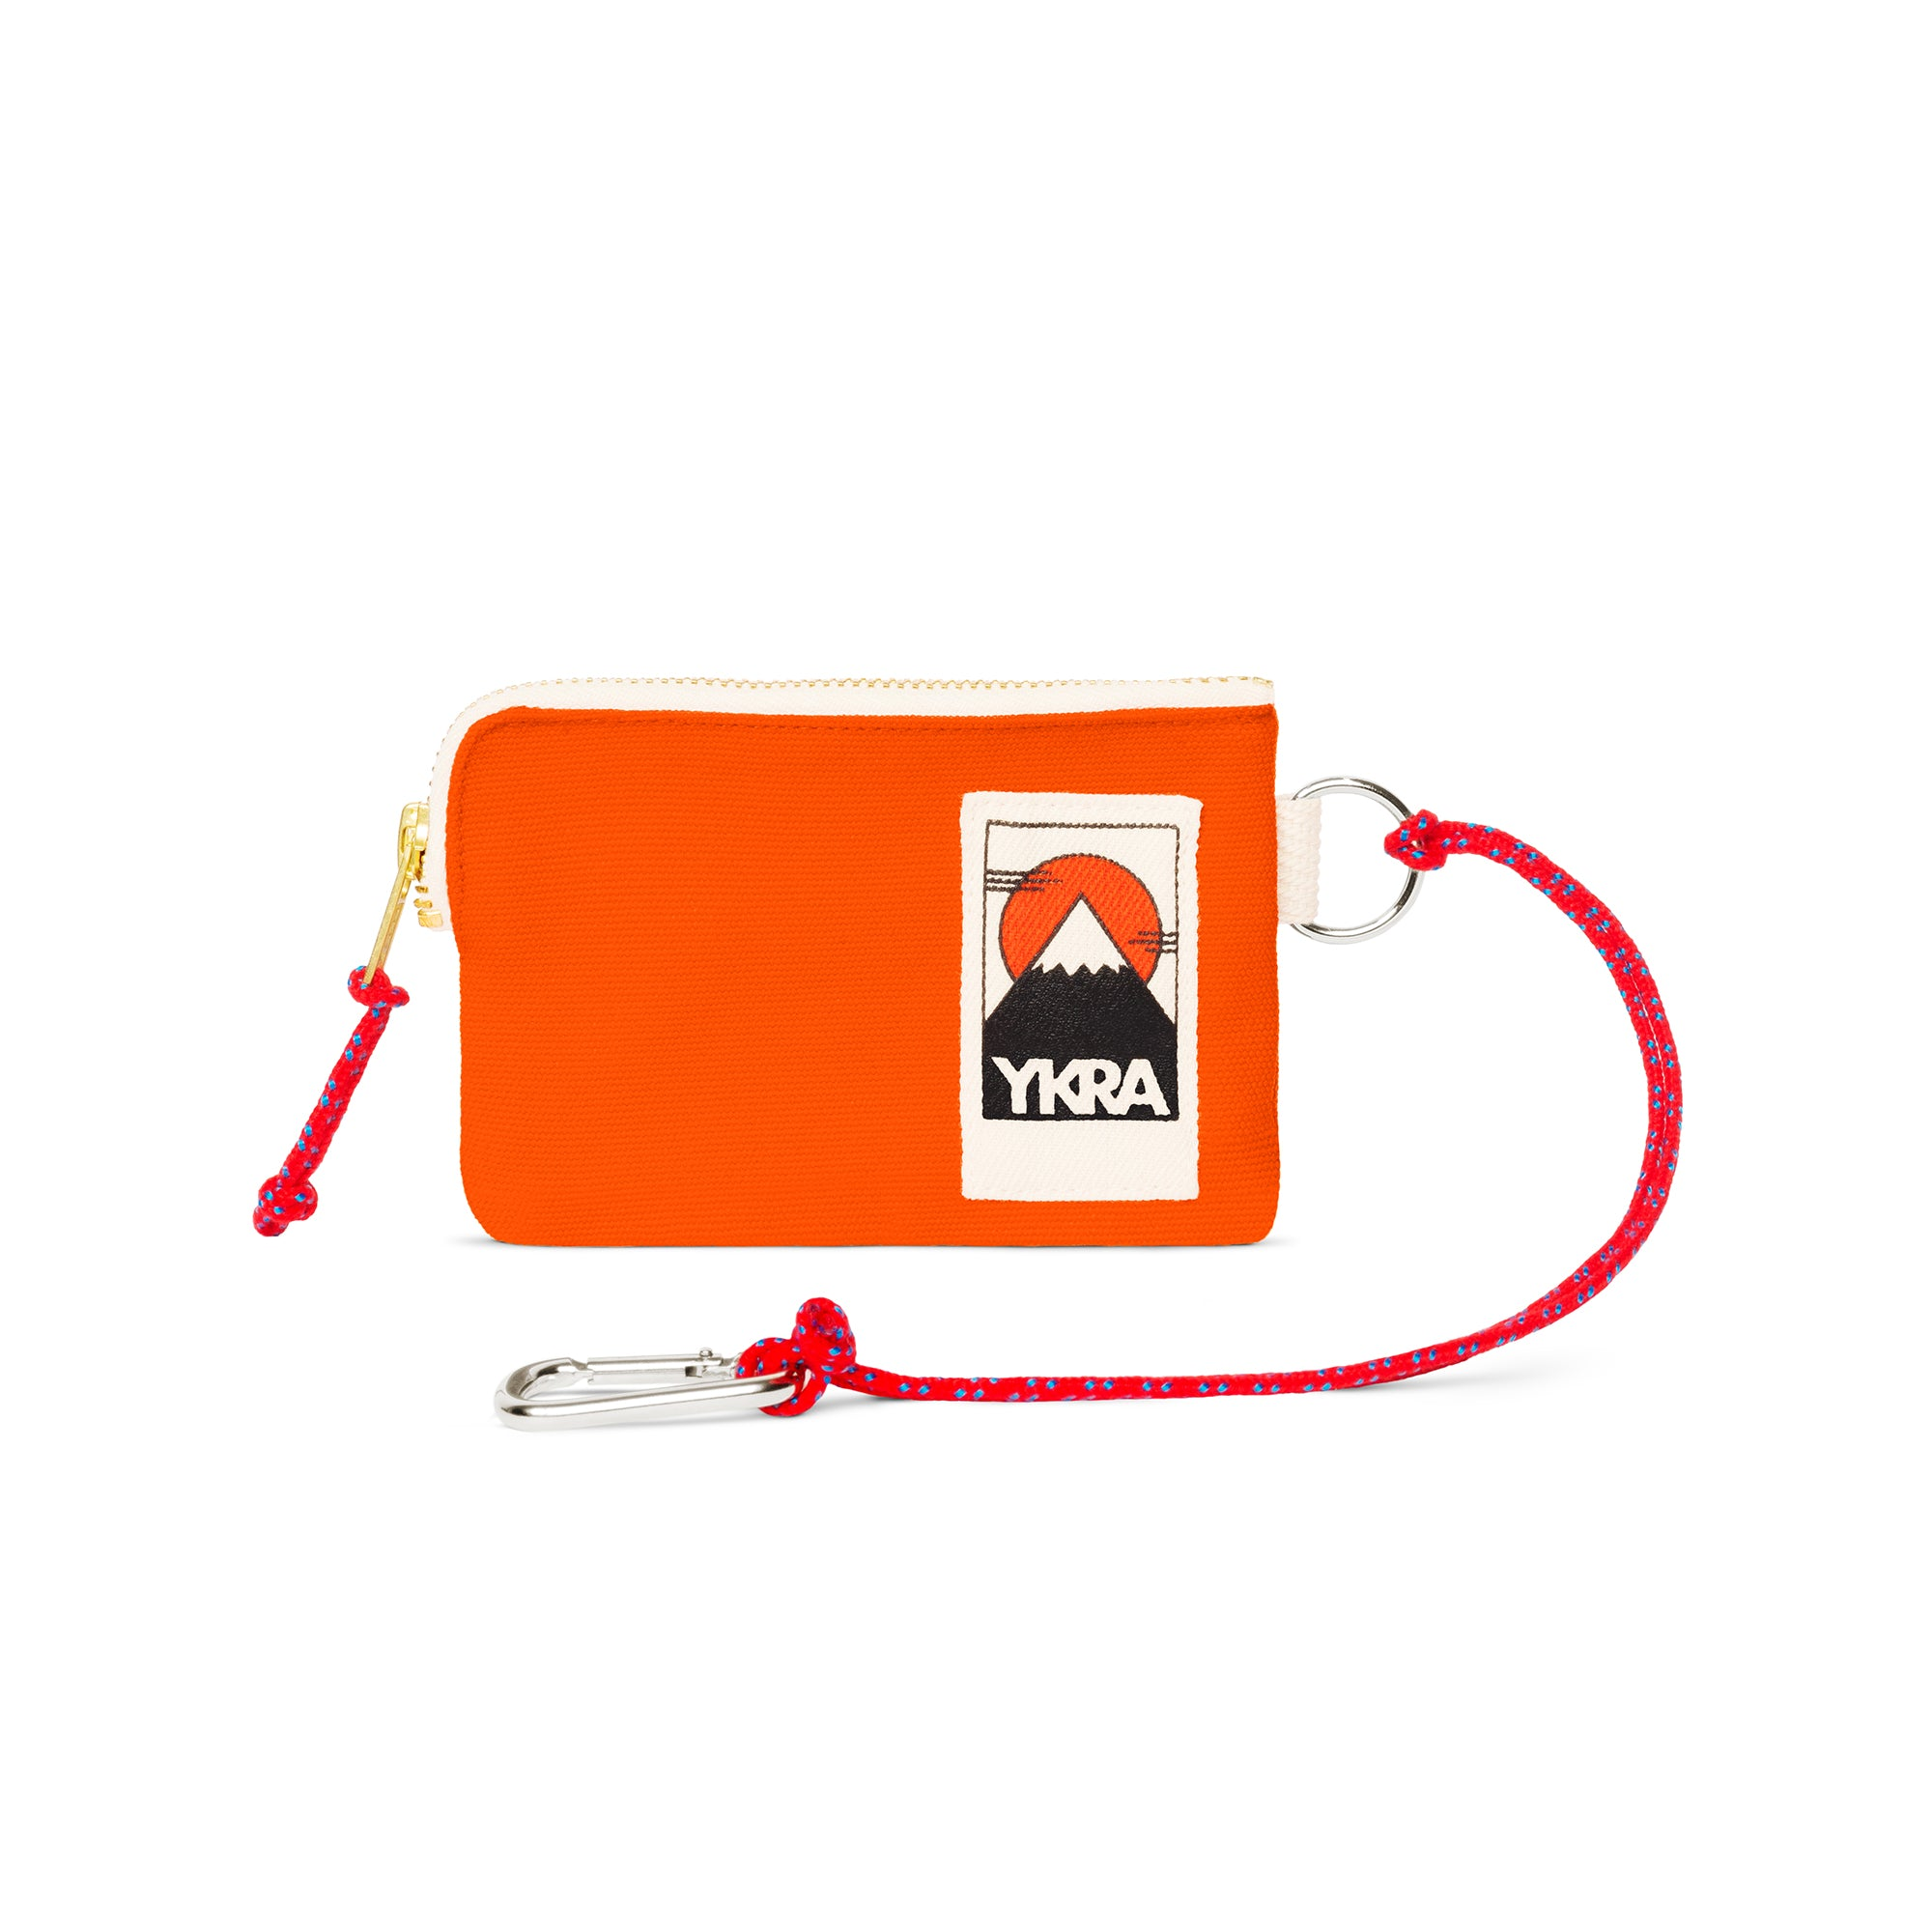 MINI WALLET - ORANGE